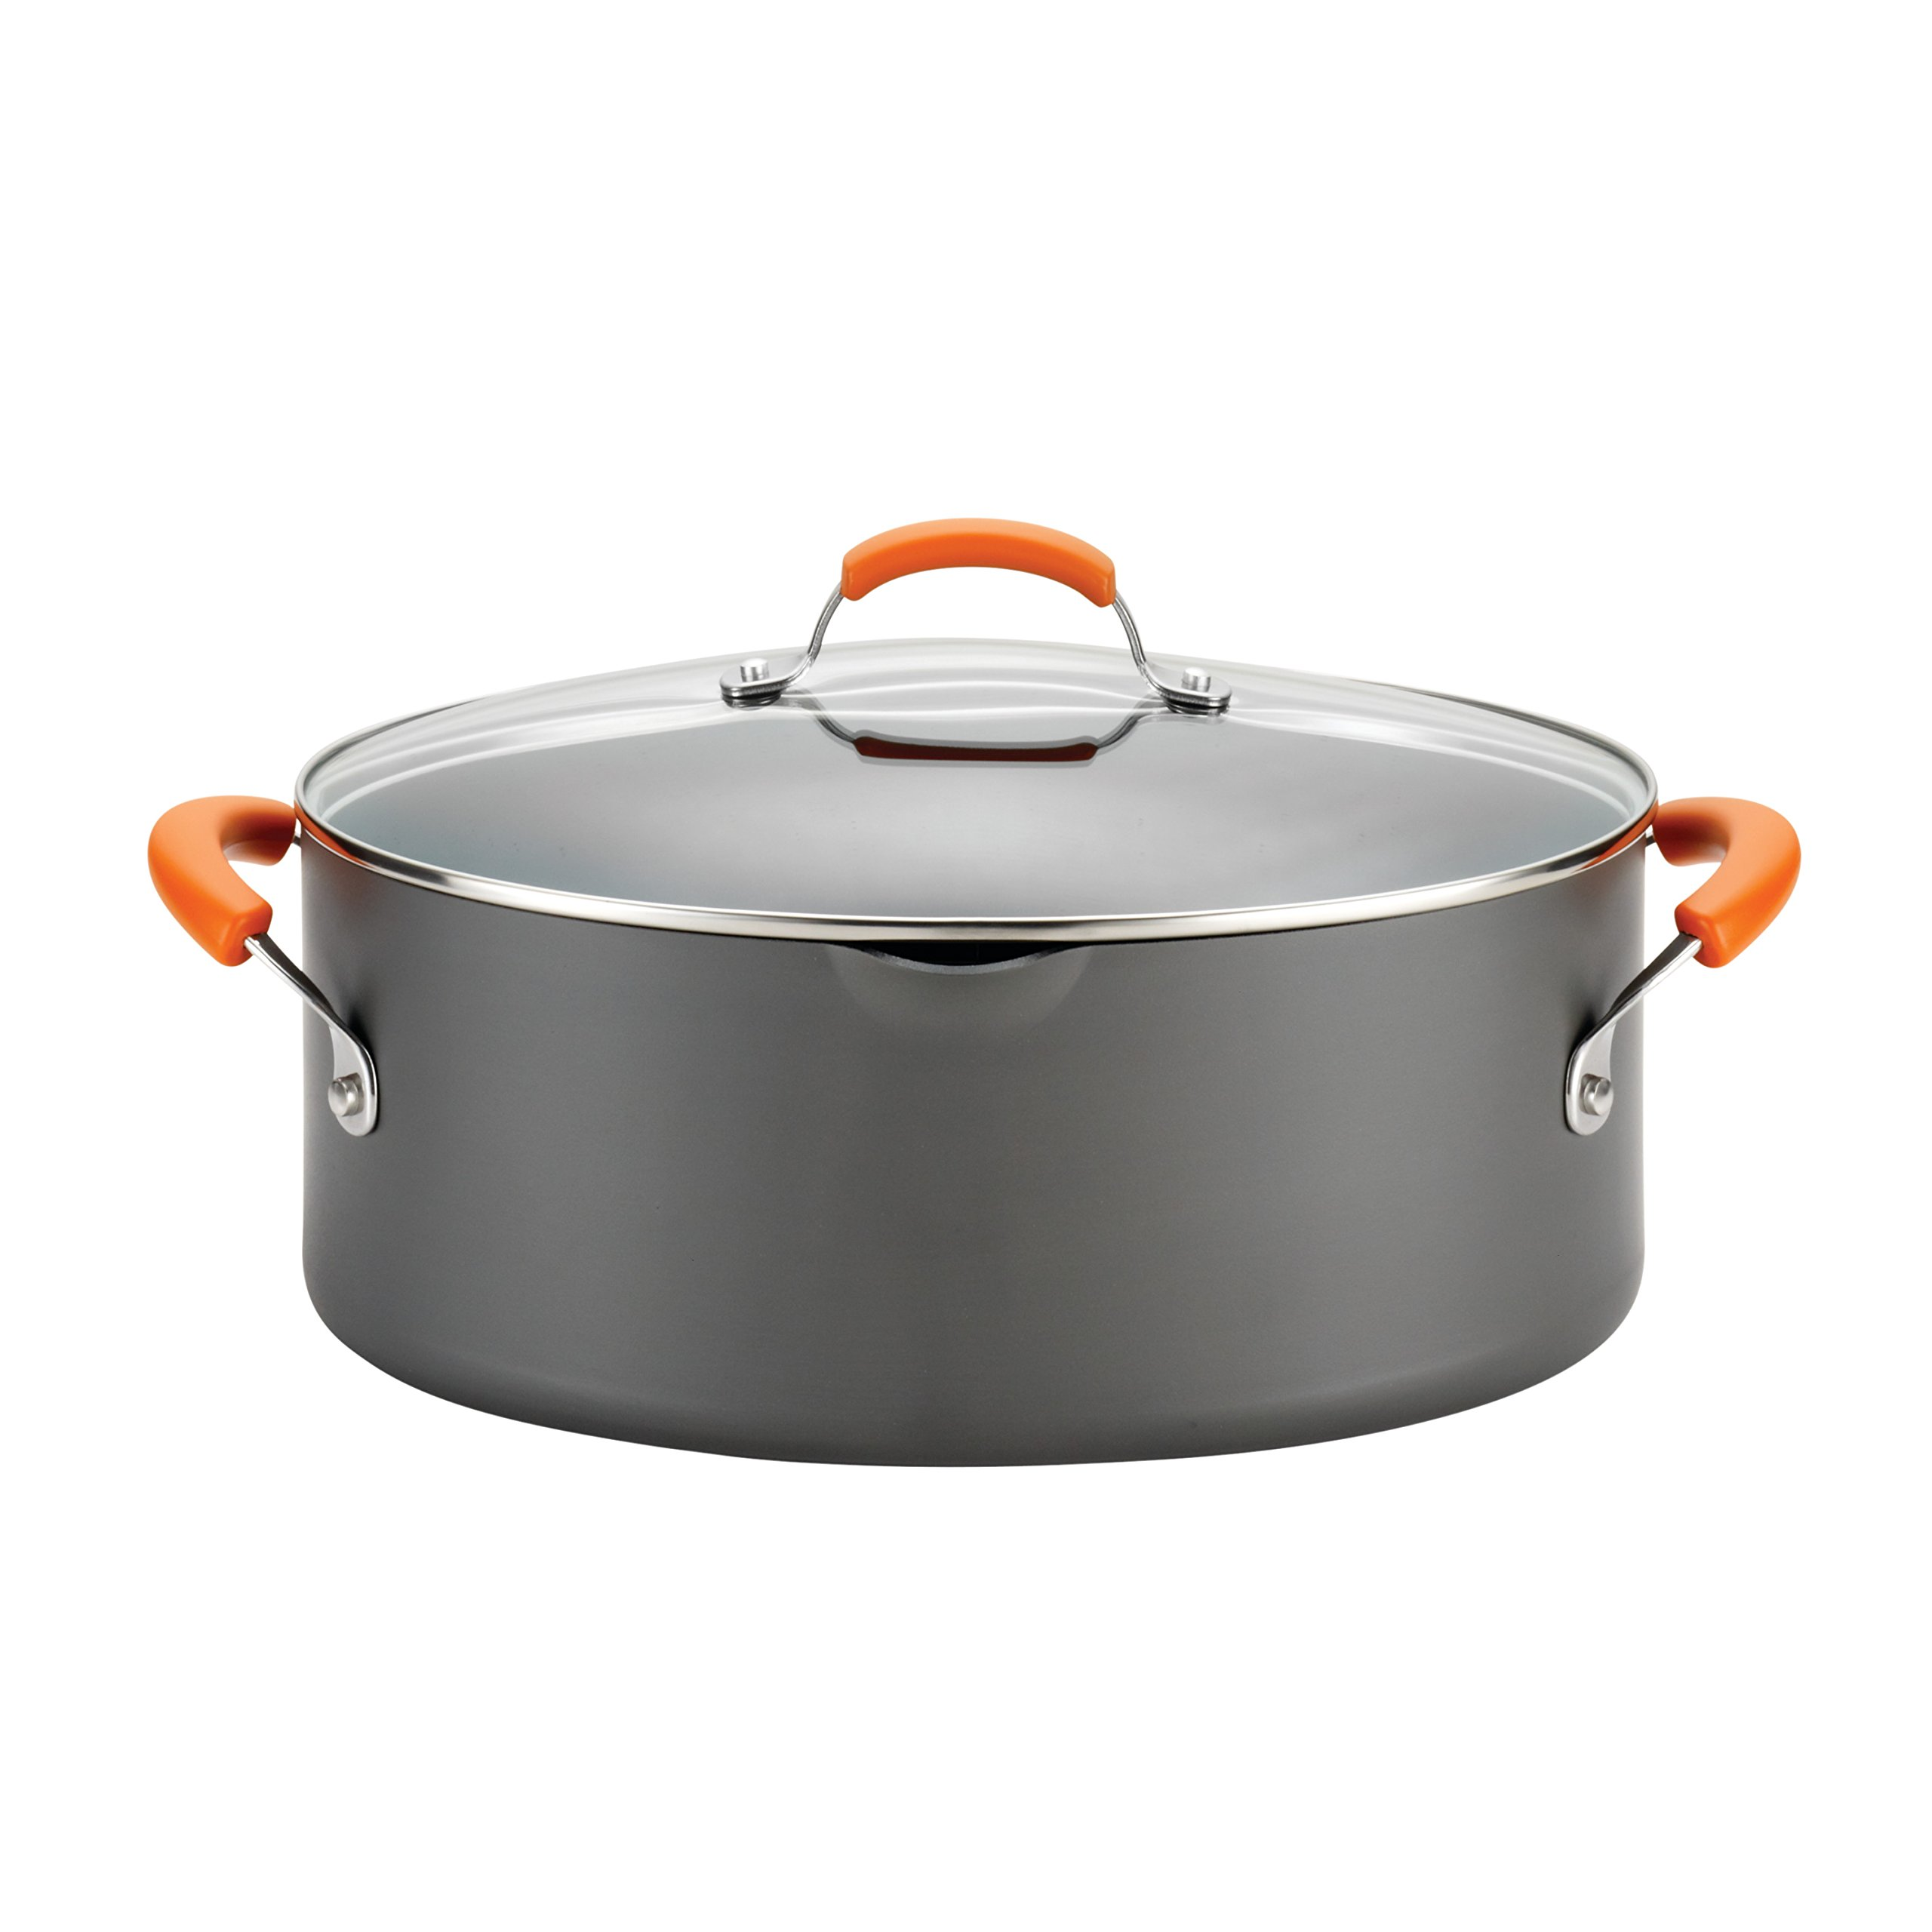 Rachael Ray Hard-Anodized Nonstick 8-Quart Covered Oval Pasta Pot with Pour Spout, Gray with Orange Handles by Rachael Ray